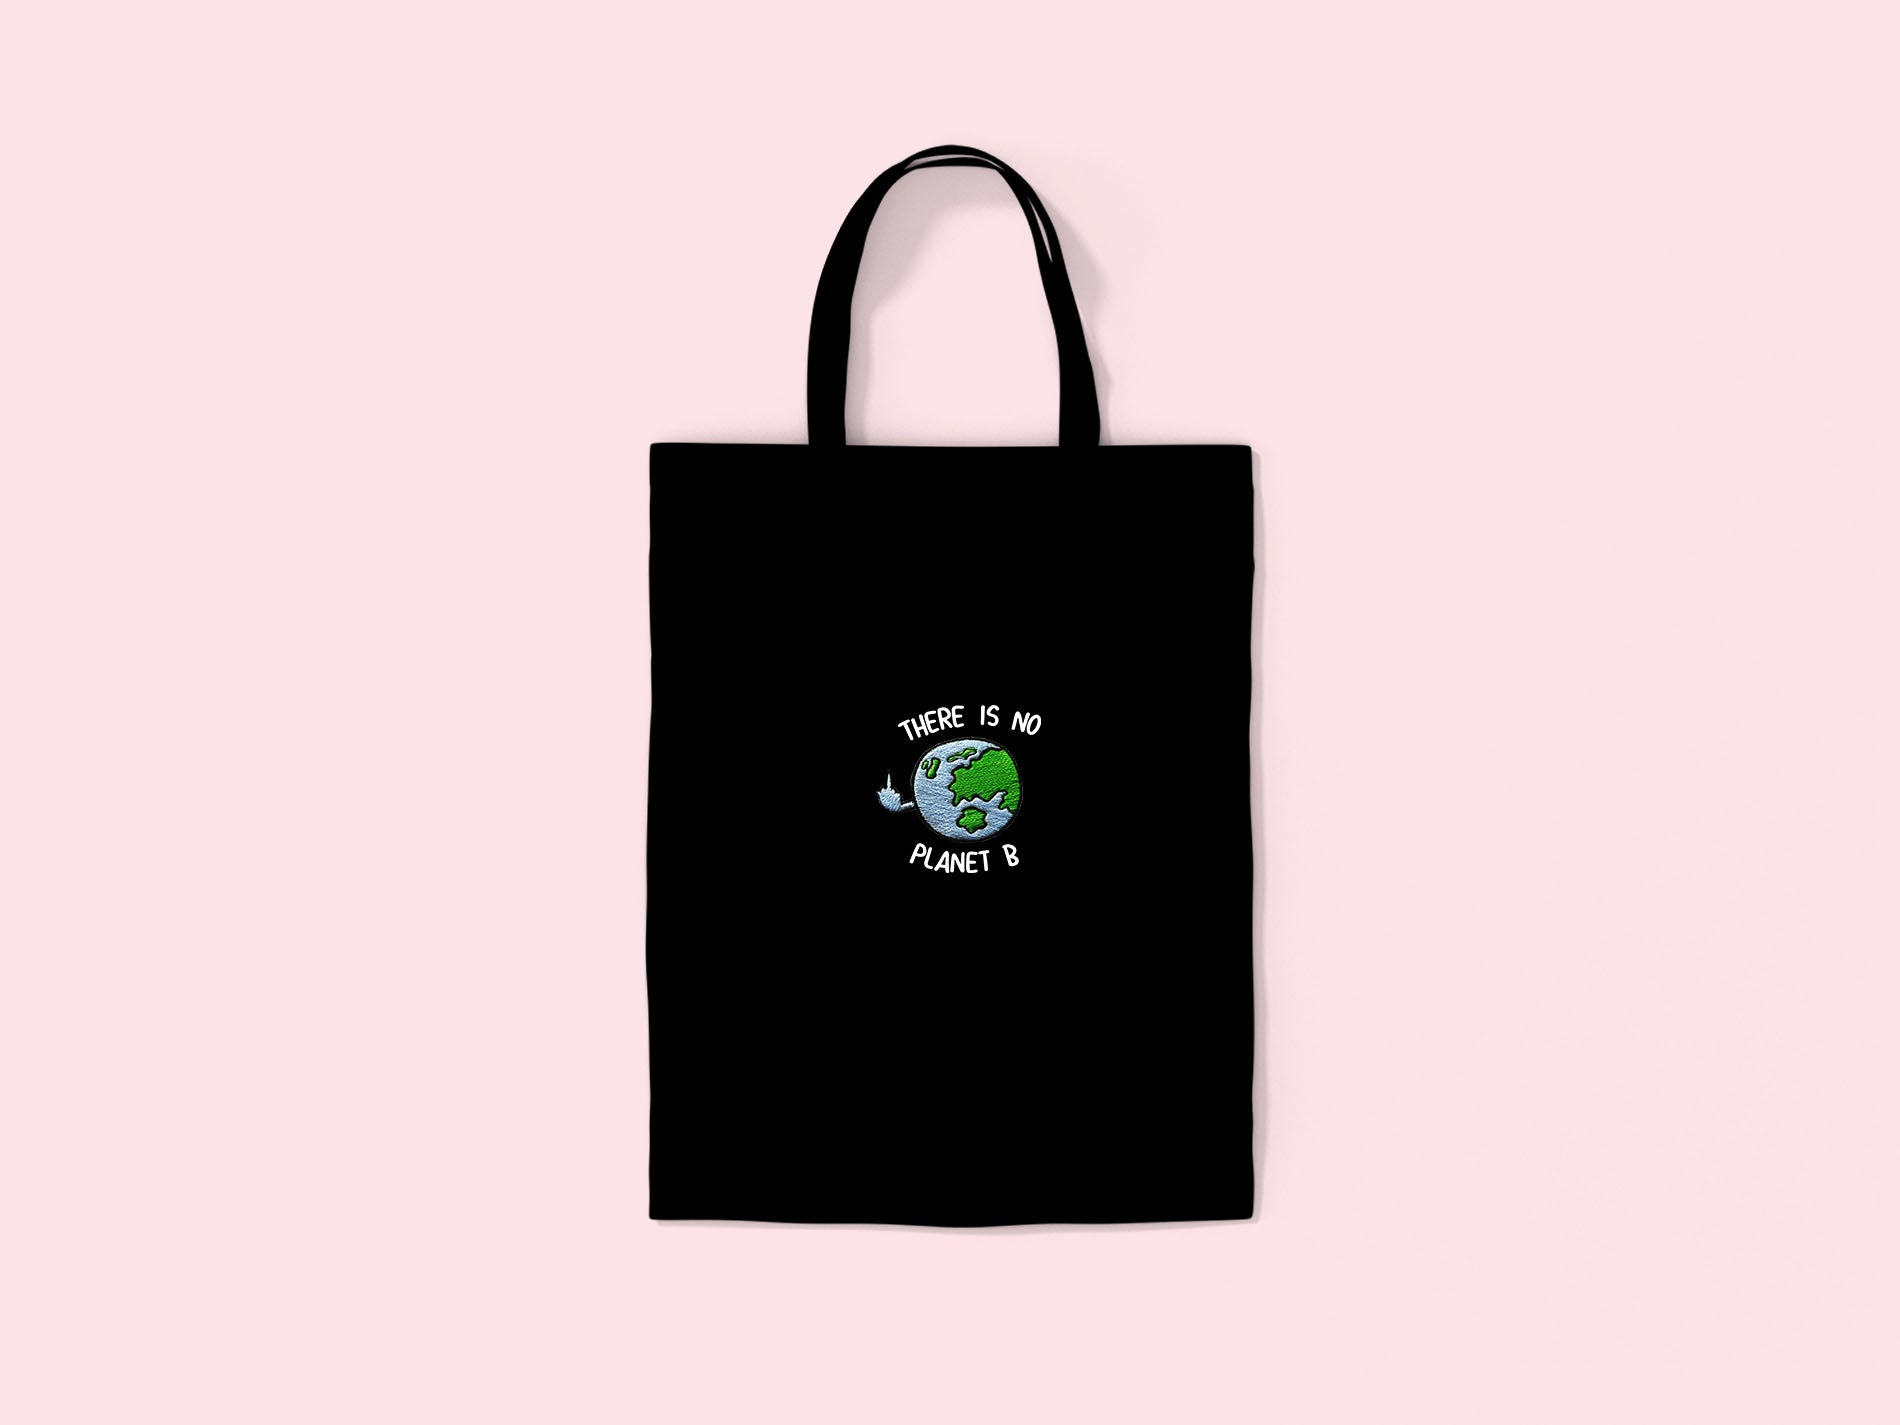 Planet B- Embroidered Tote Bag